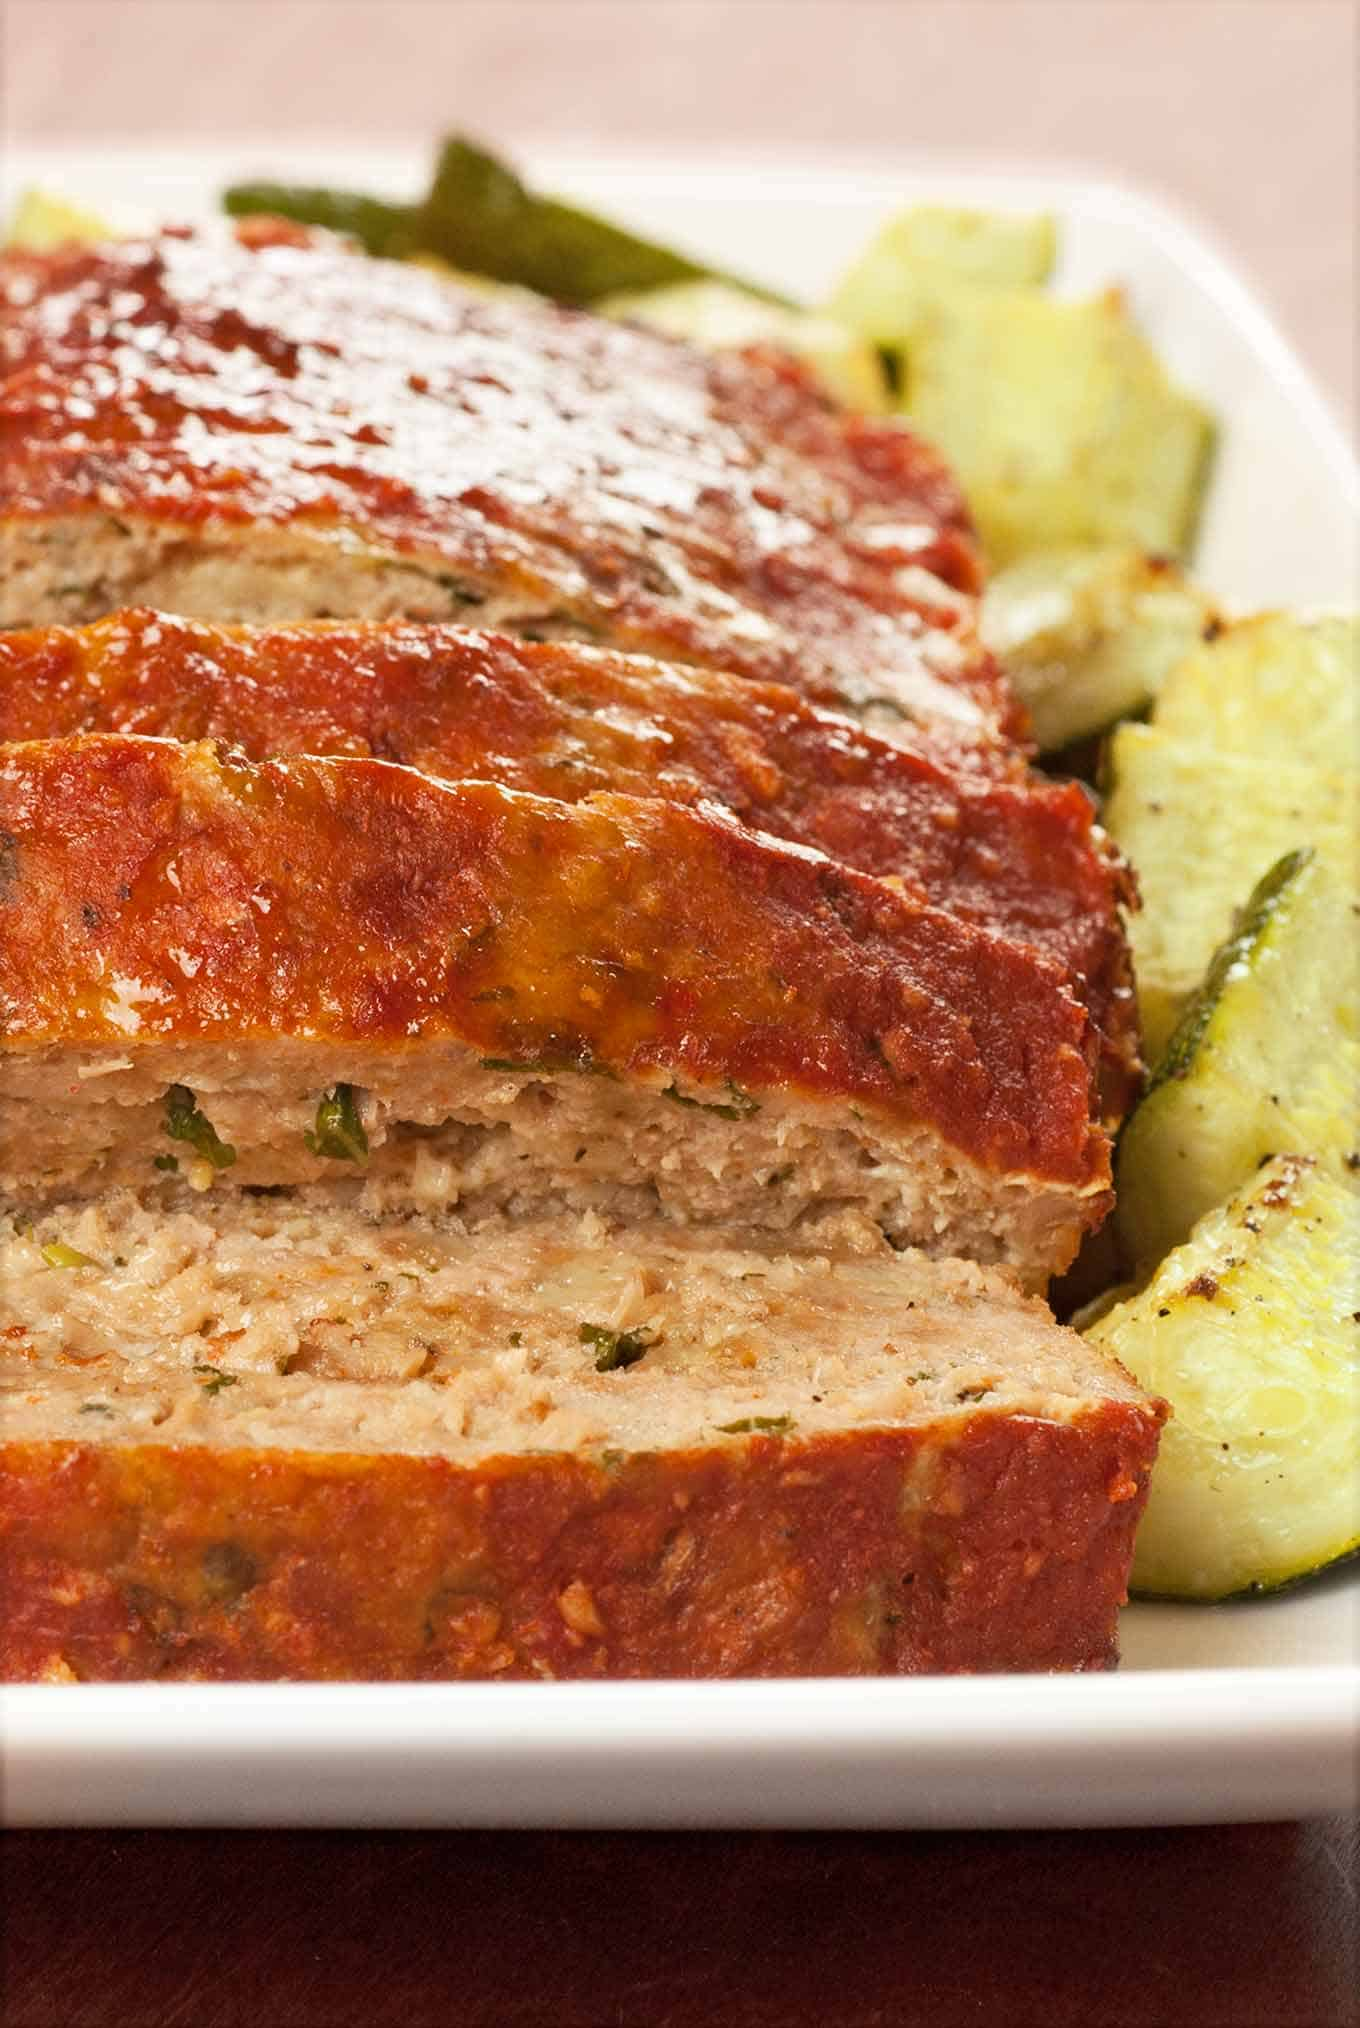 Sliced turkey meatloaf on a serving plate surrounded by roasted zucchini.